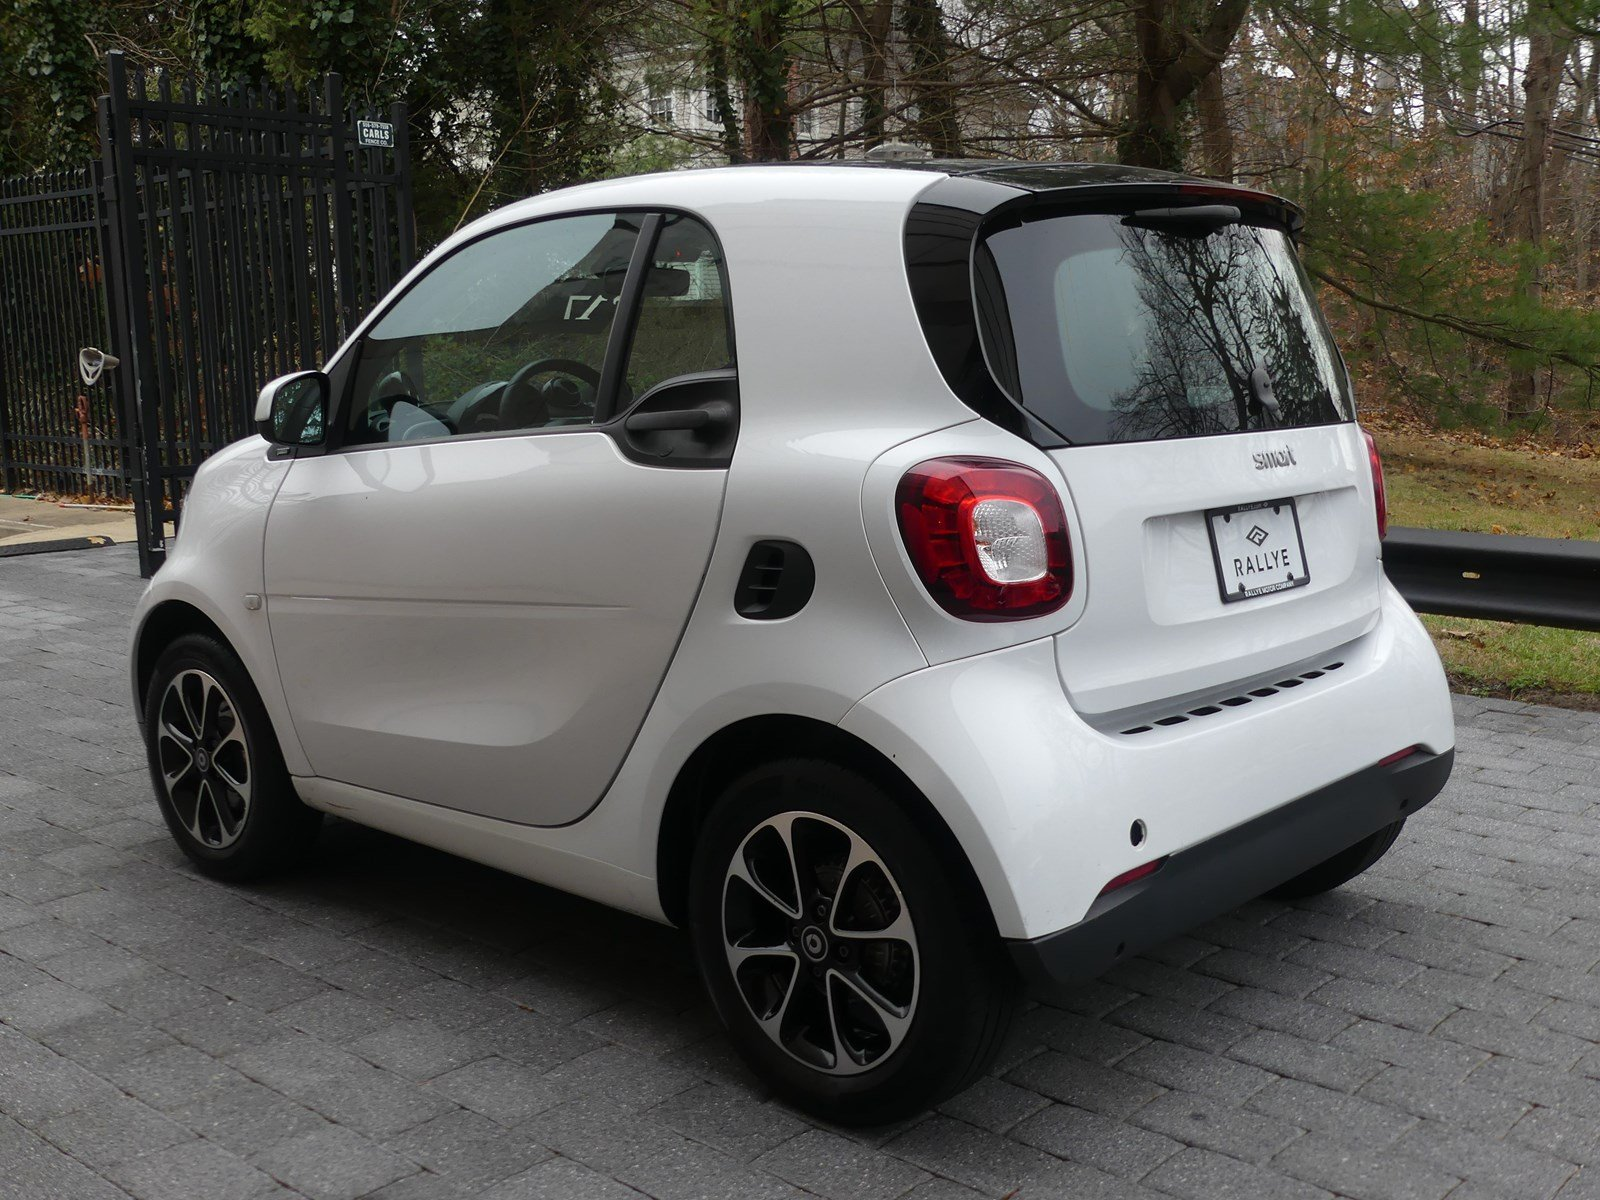 Pre-Owned 2017 smart SMT fortwo coupe